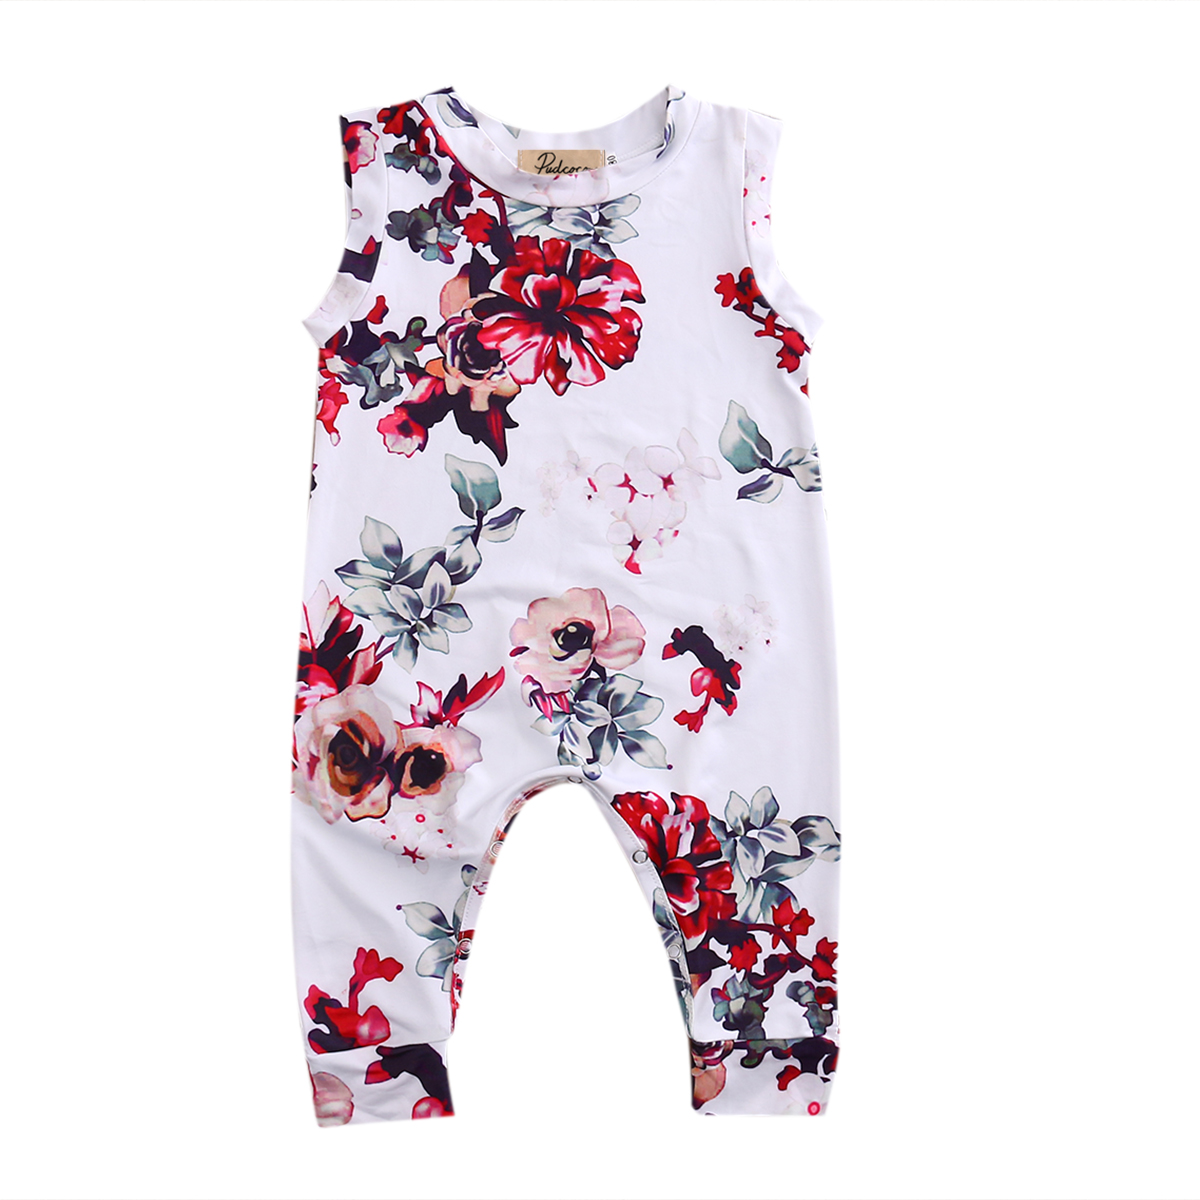 Baby Girls Romper Sleeveless Cute Flower Outfits Sunsuit ...